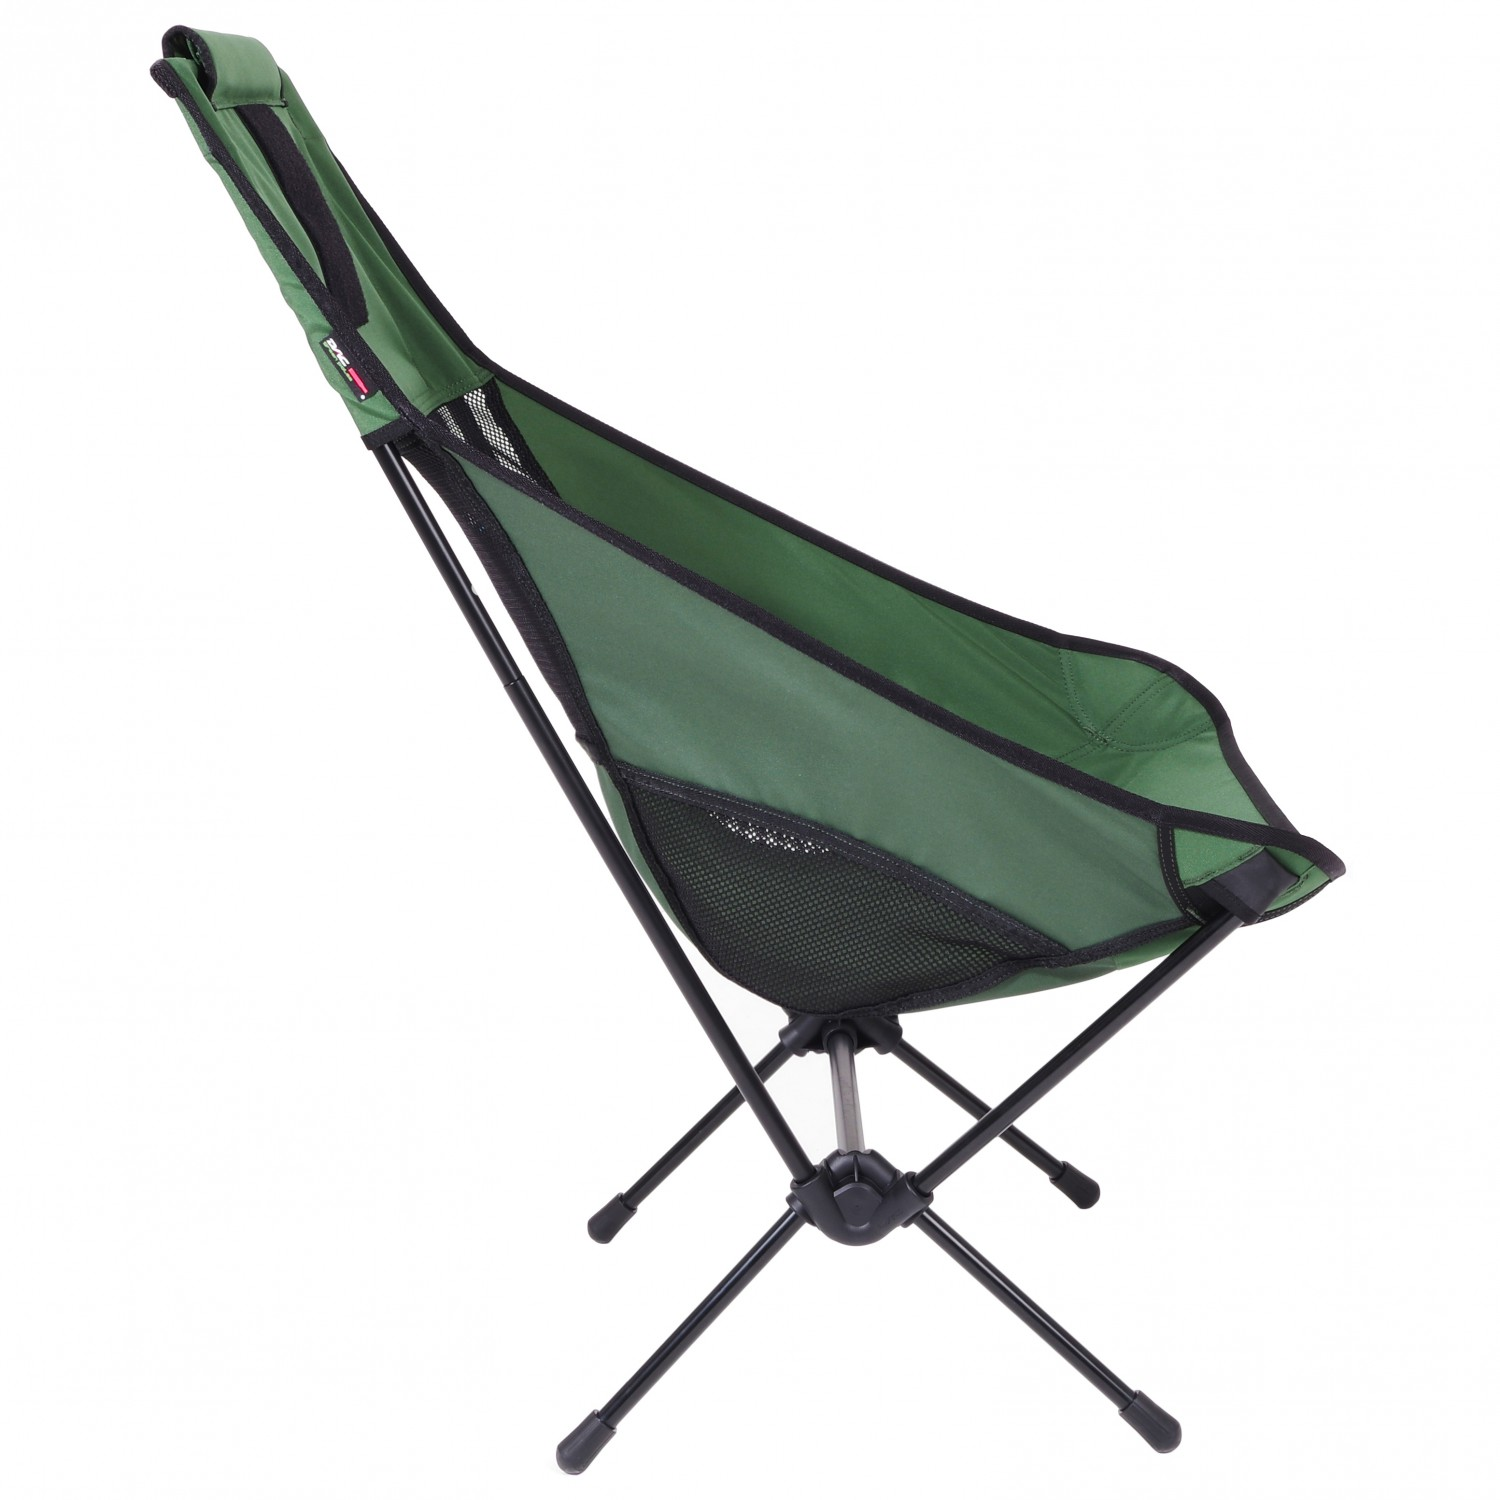 Helinox Chairs Helinox Chair Two Camping Chair Free Uk Delivery